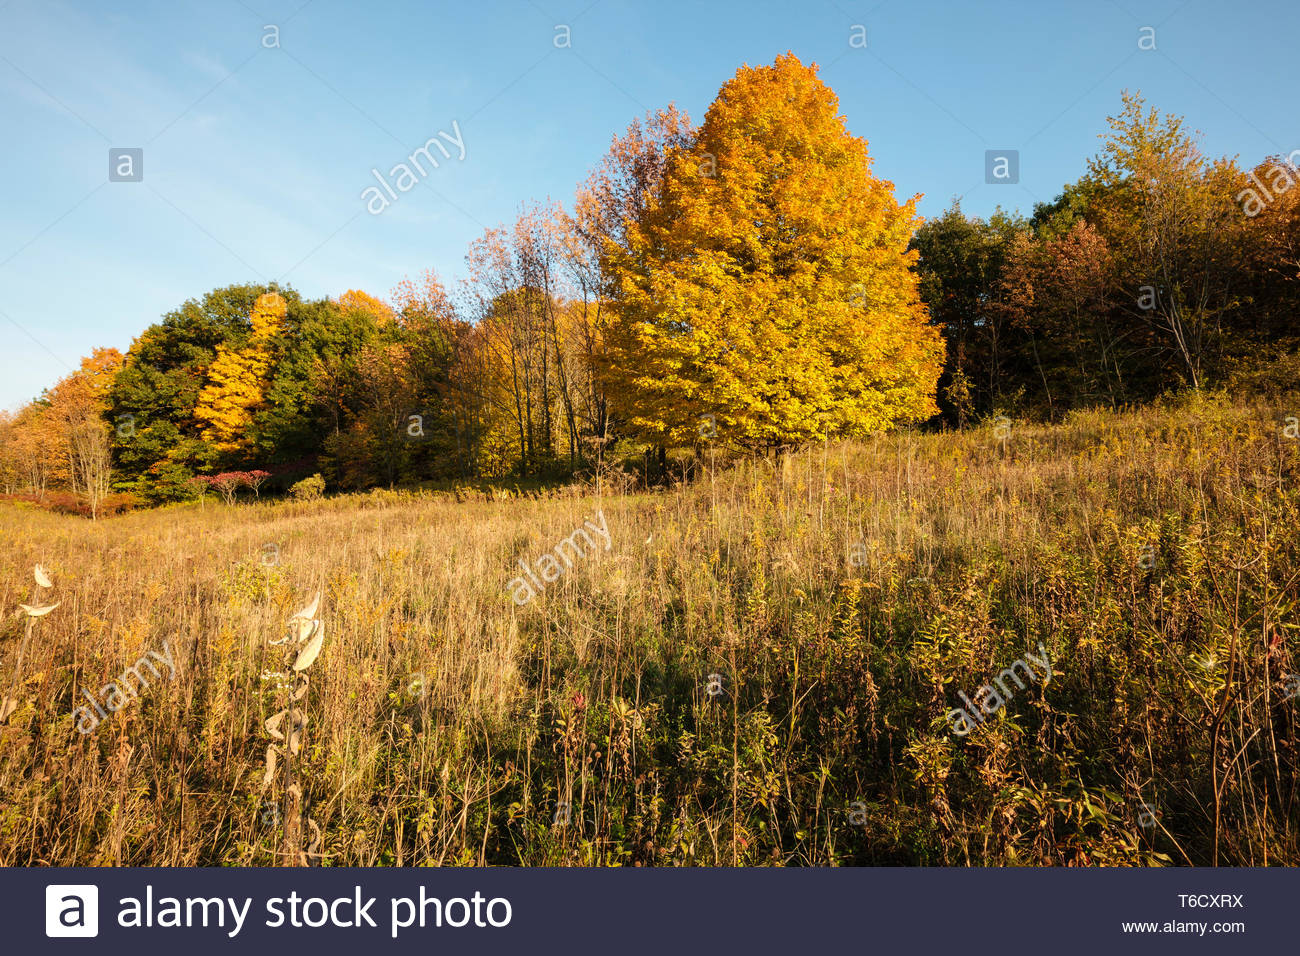 Autumn maples dot the hillside on an autumn afternoon, as the sun starts its descent in the west. - Stock Image